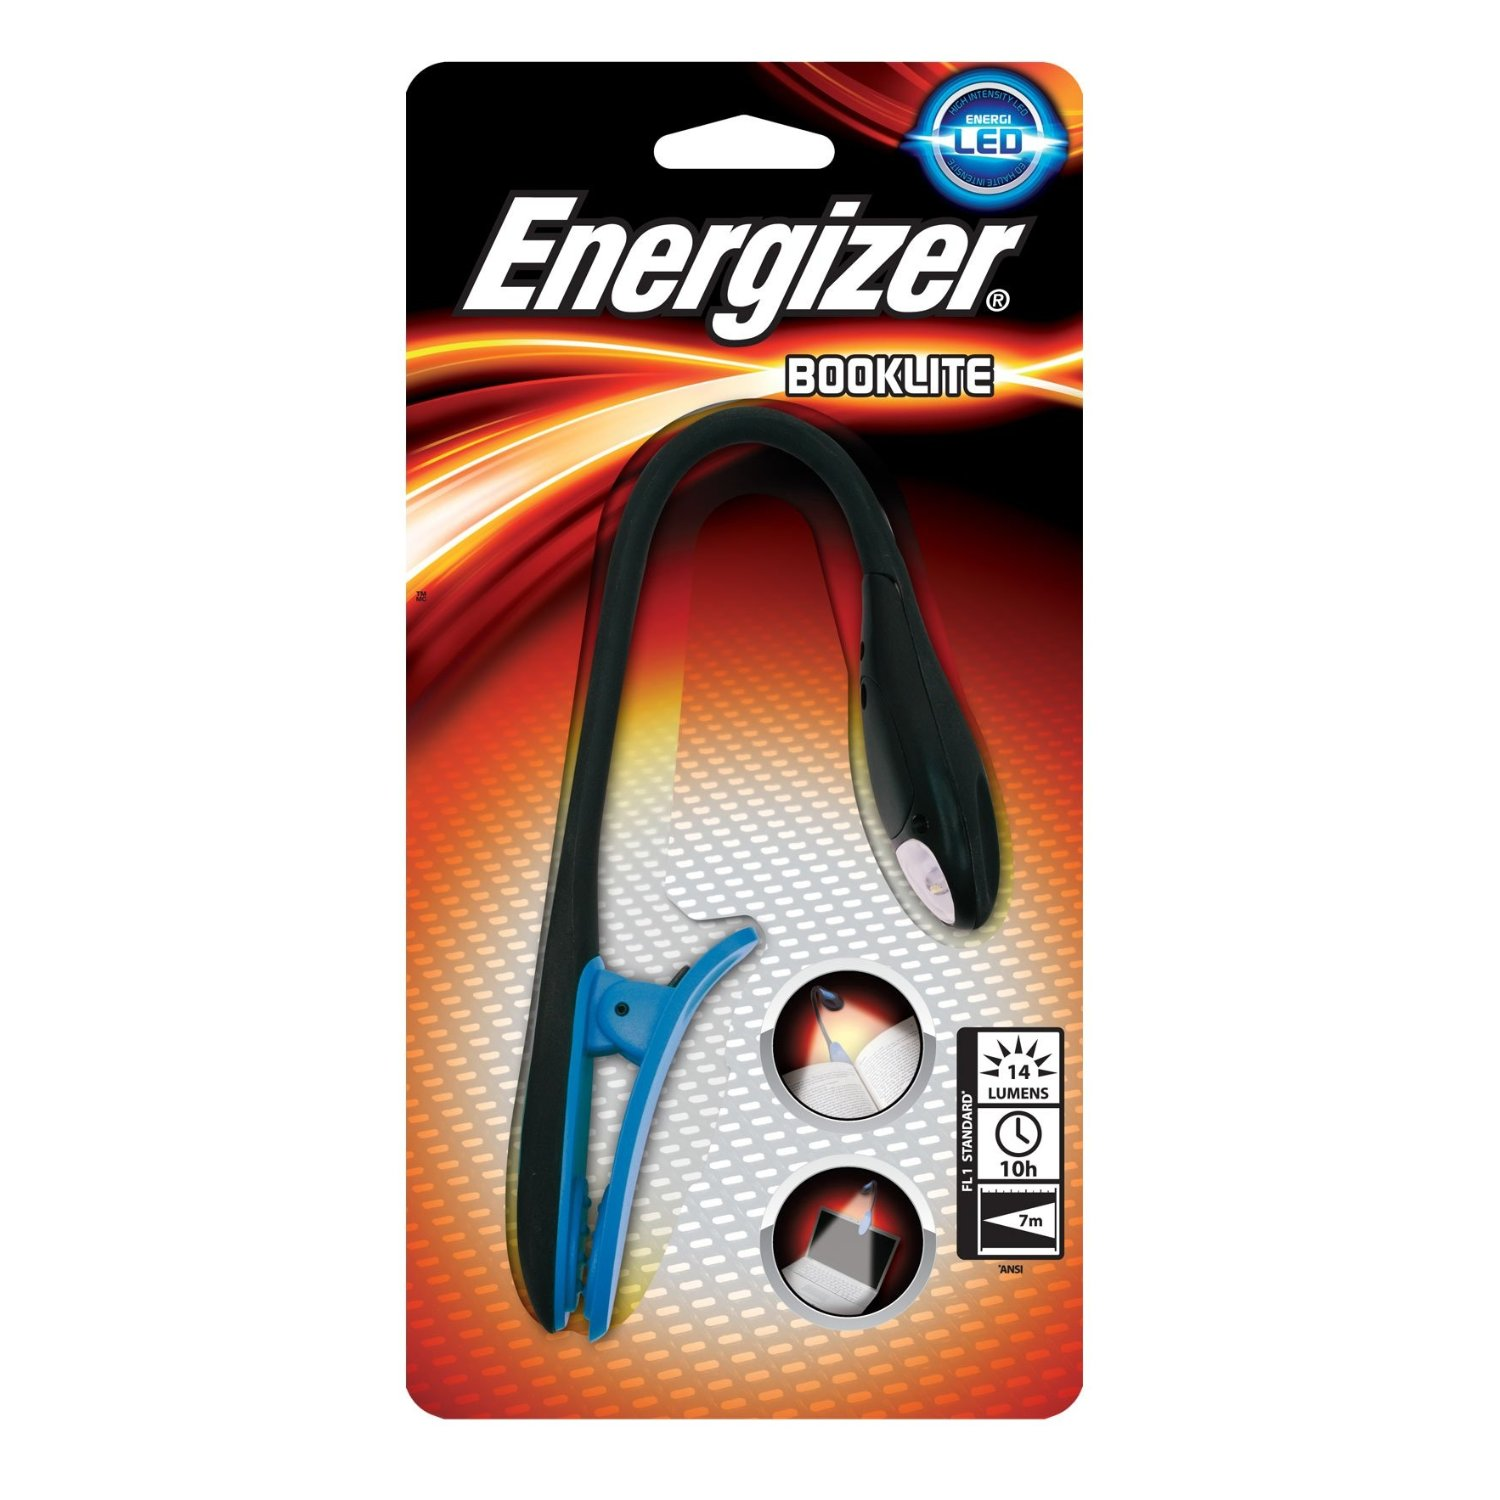 energizer booklite led clip on torch light for kindle etc